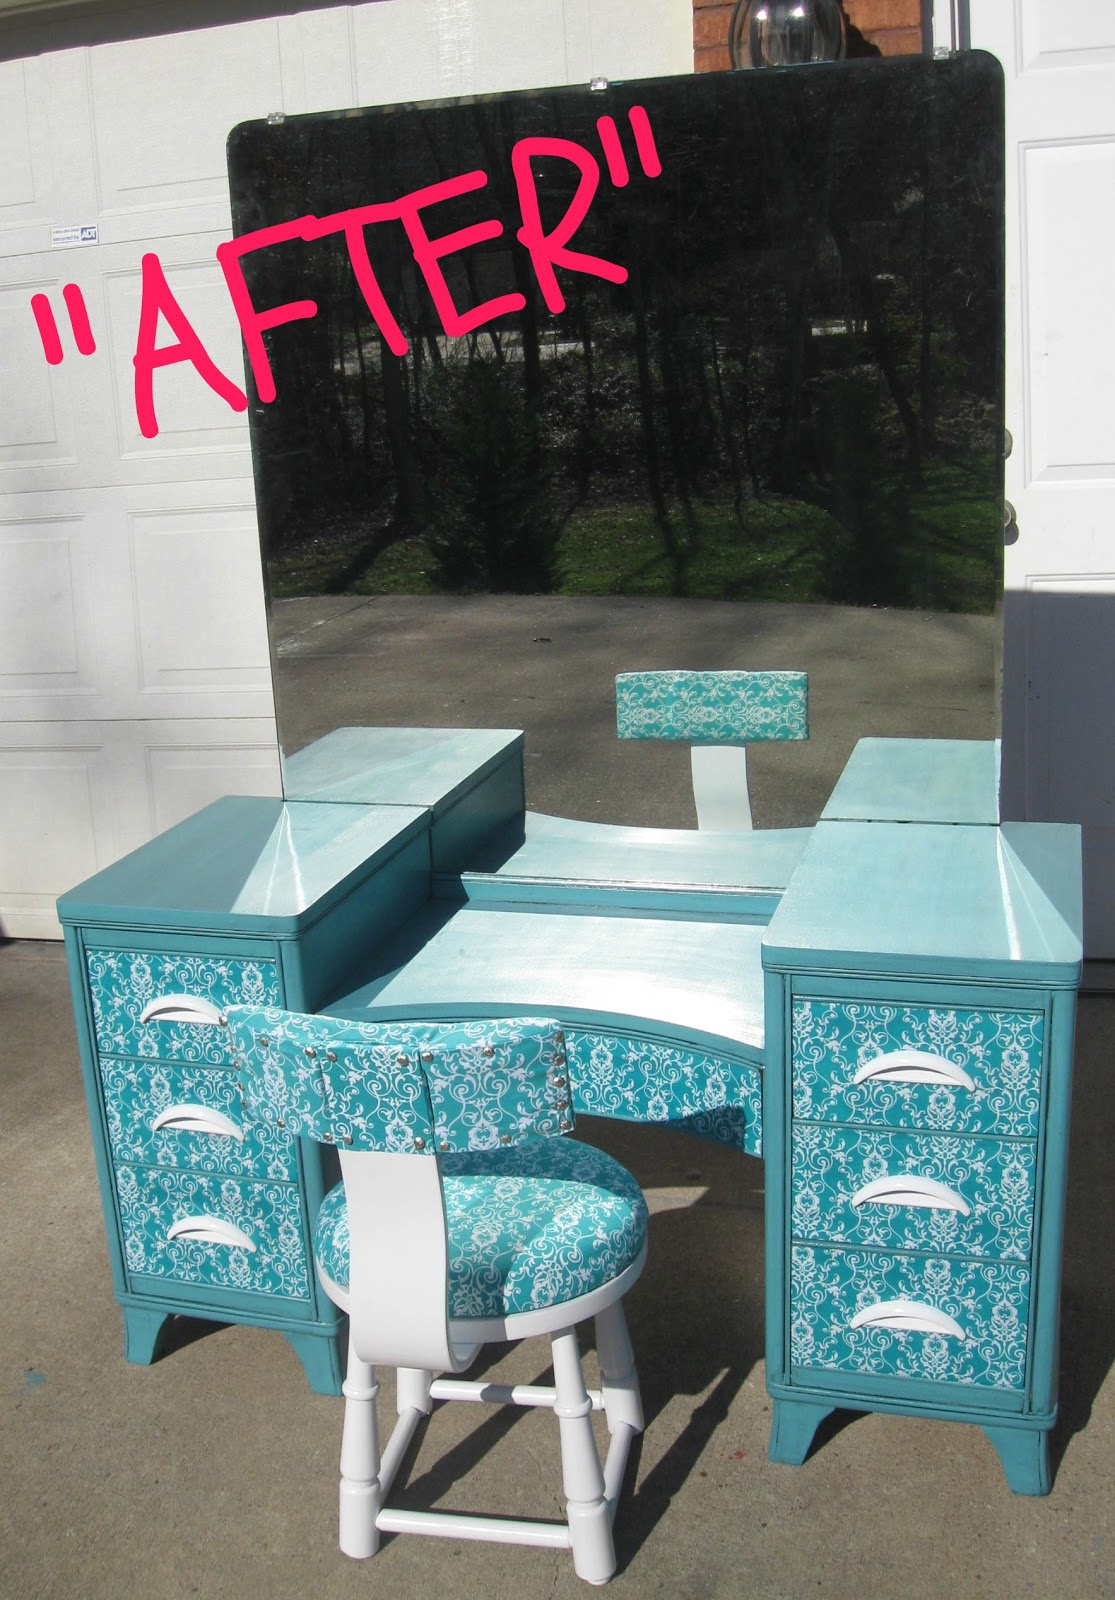 Here are Before & After pictures: - That's Not Junk...Refurbished Recycled Furniture: Antique Vanity